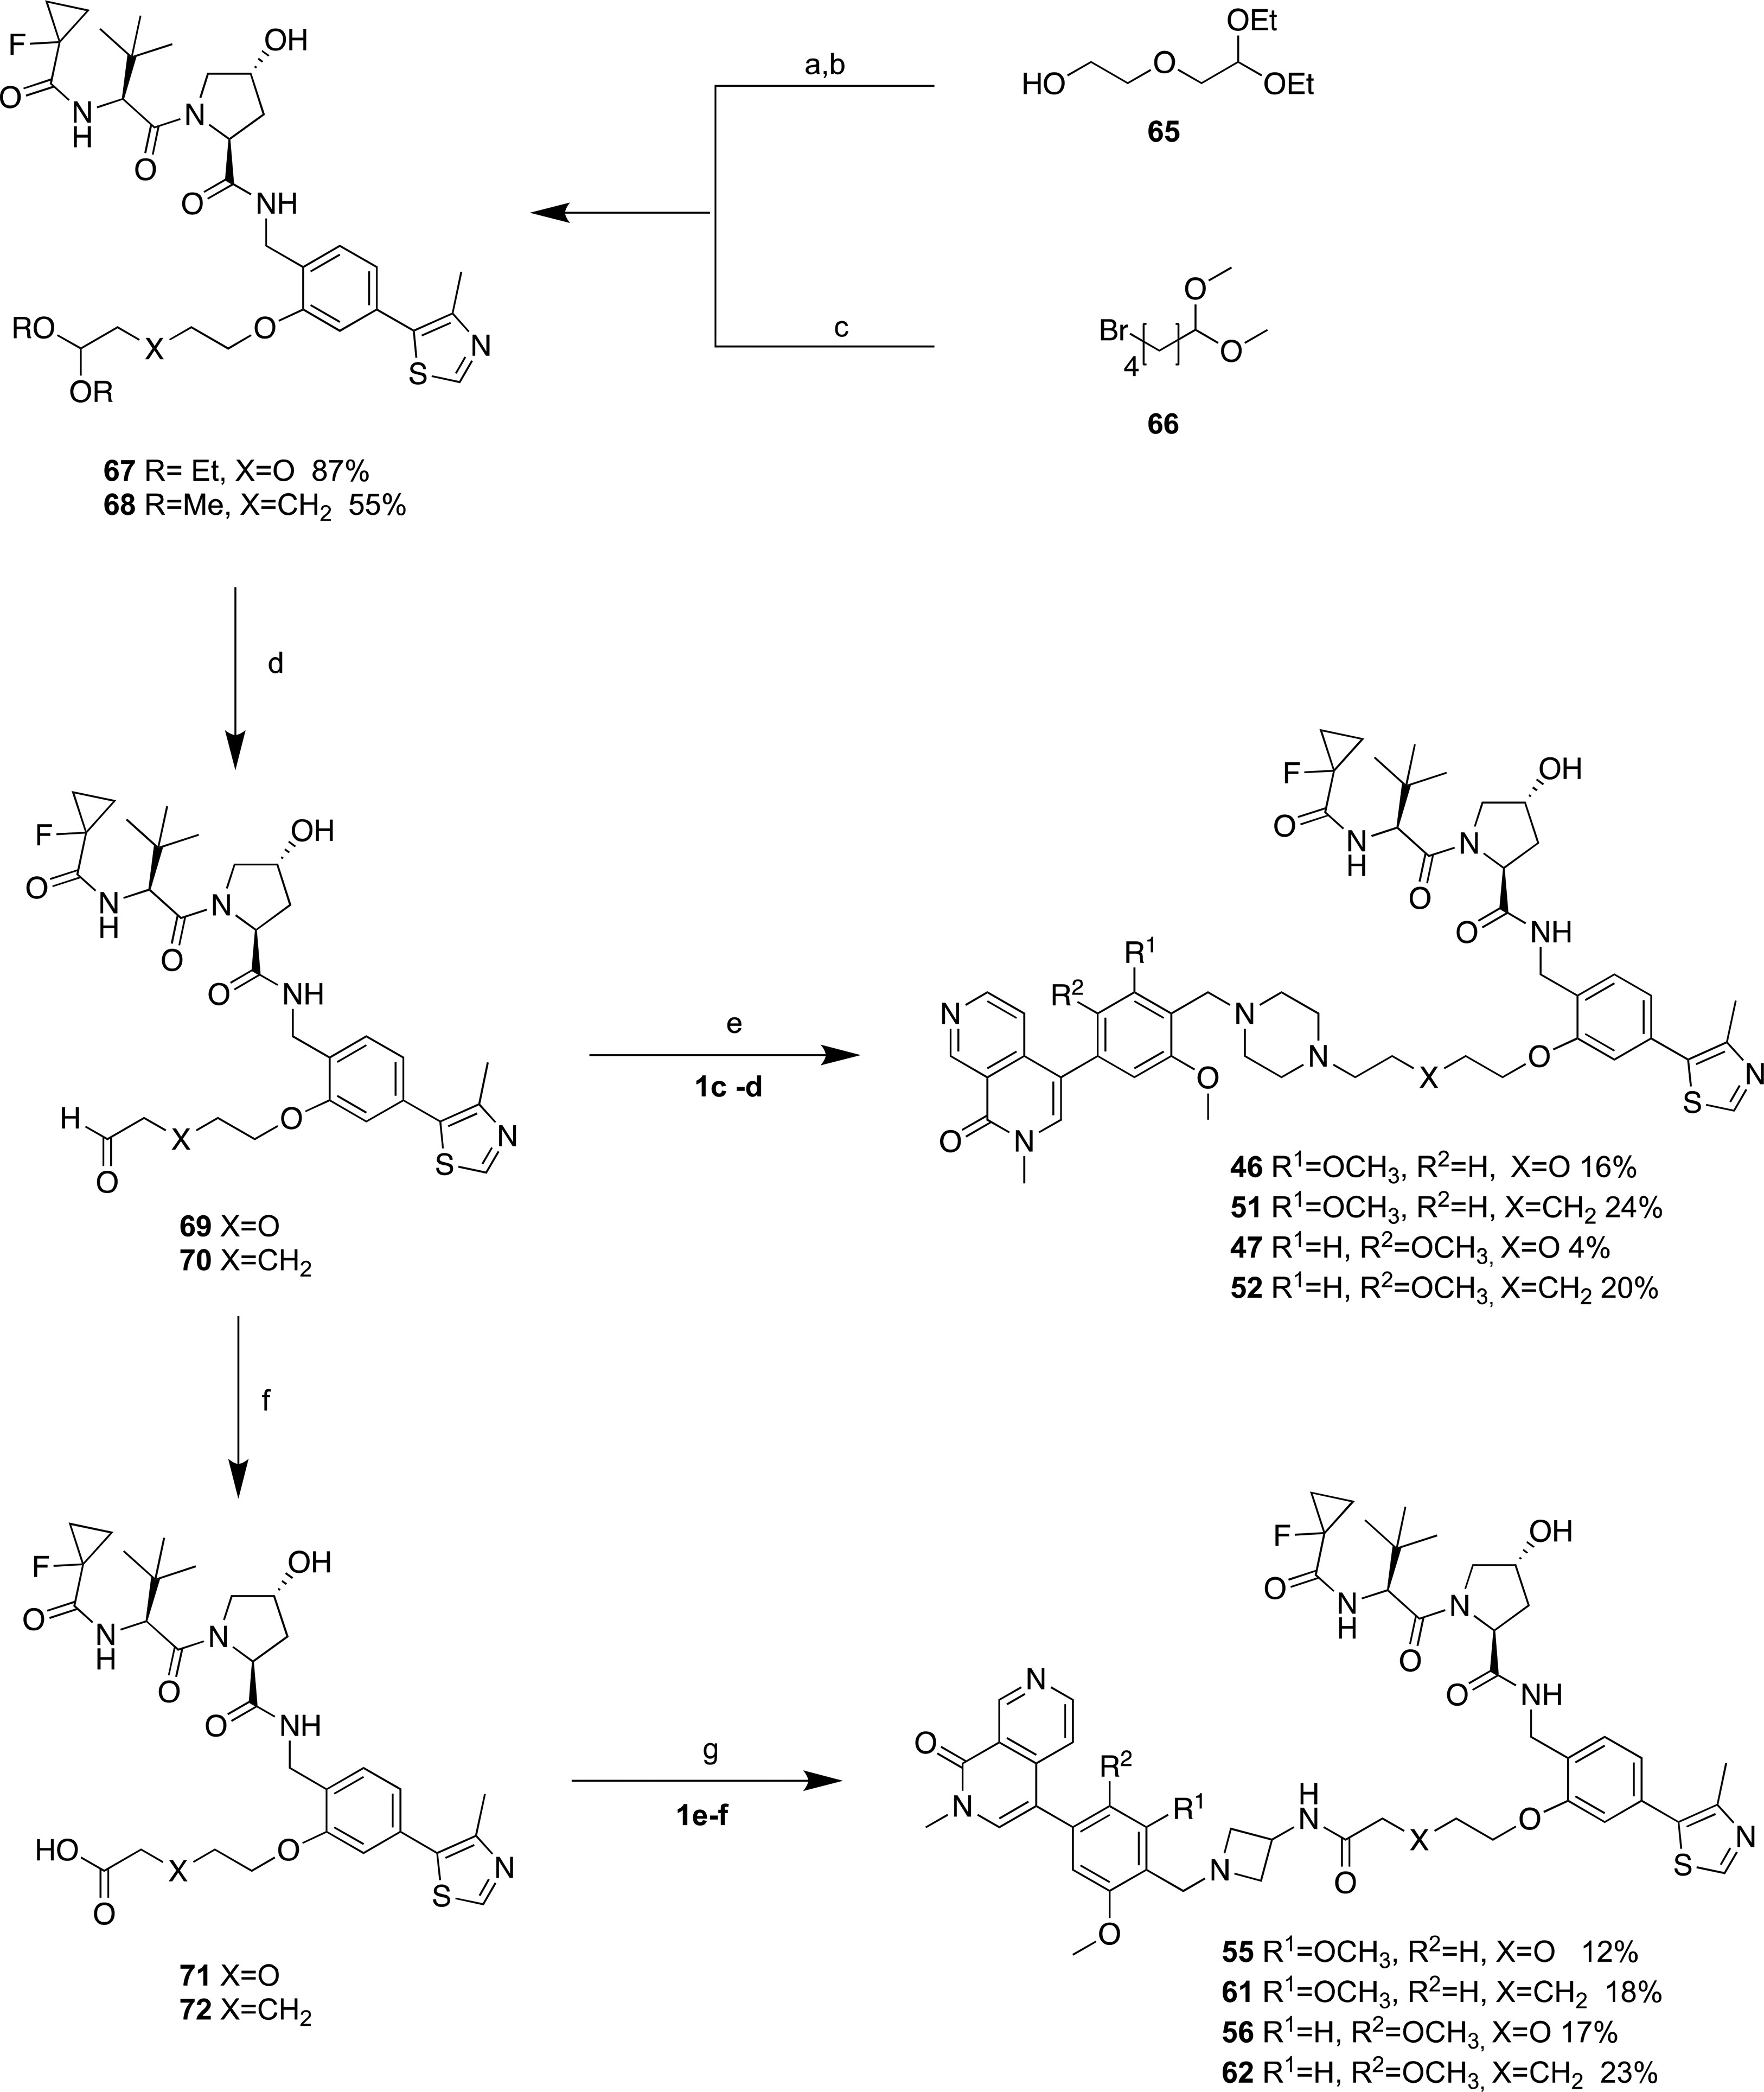 Scheme 5. General Synthetic Routes for Third-Generation Compounds